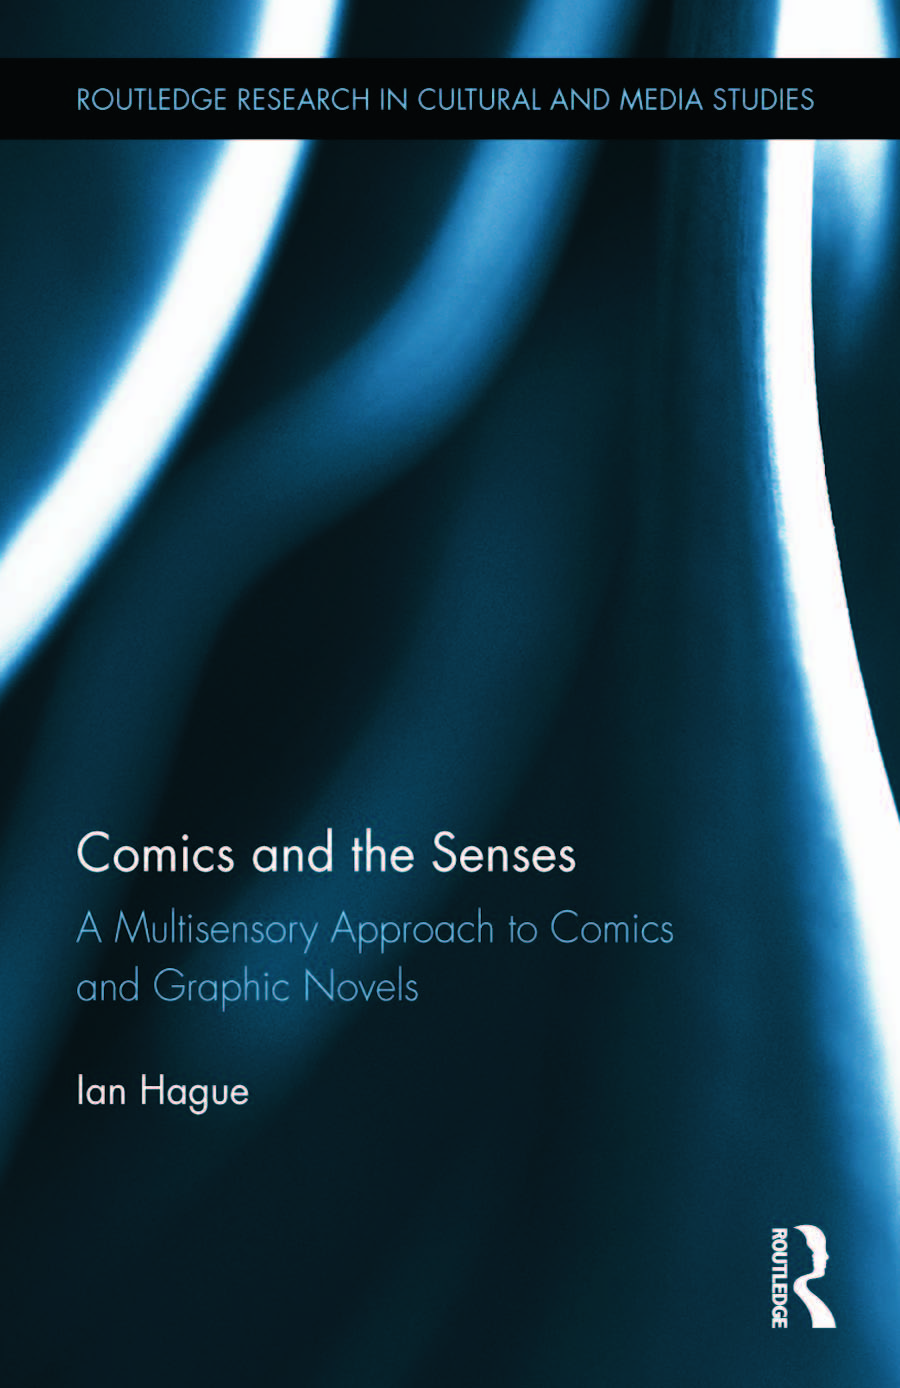 Comics and the Senses Cover.jpg